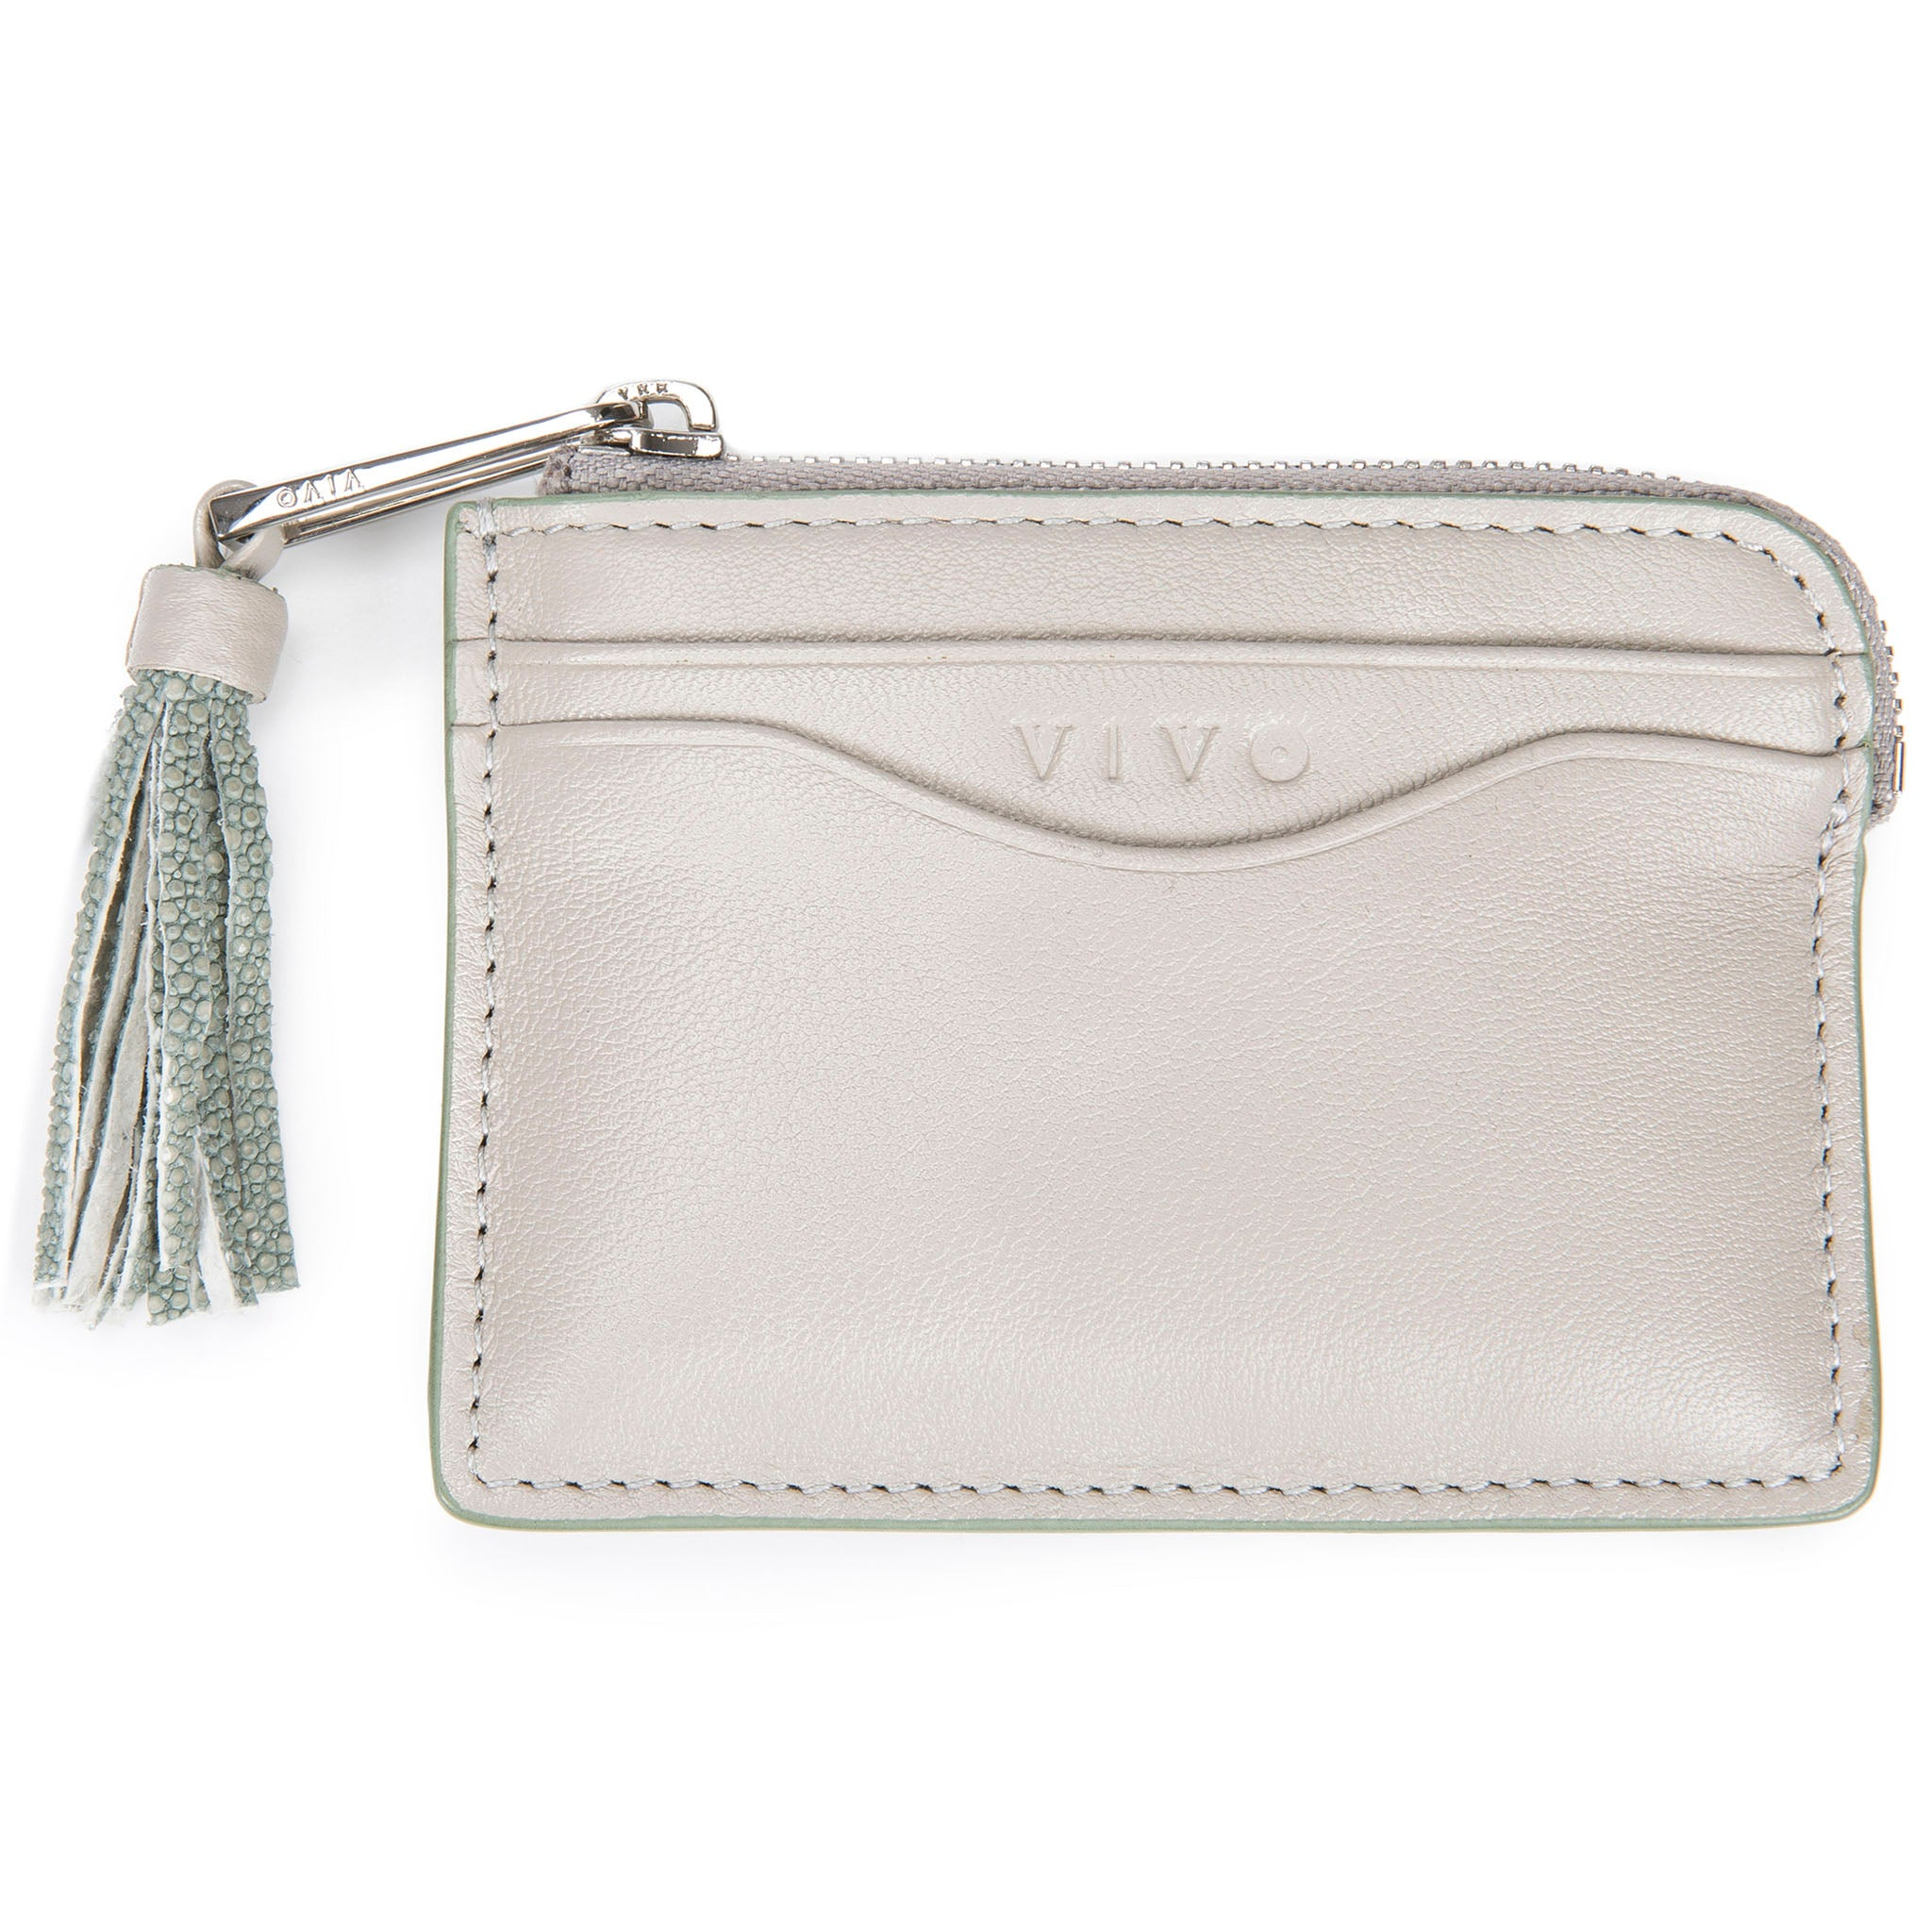 Ecru Leather Zipper Card Or Coin Case With Shagreen Tassel Pull Front View Avery - Vivo Direct